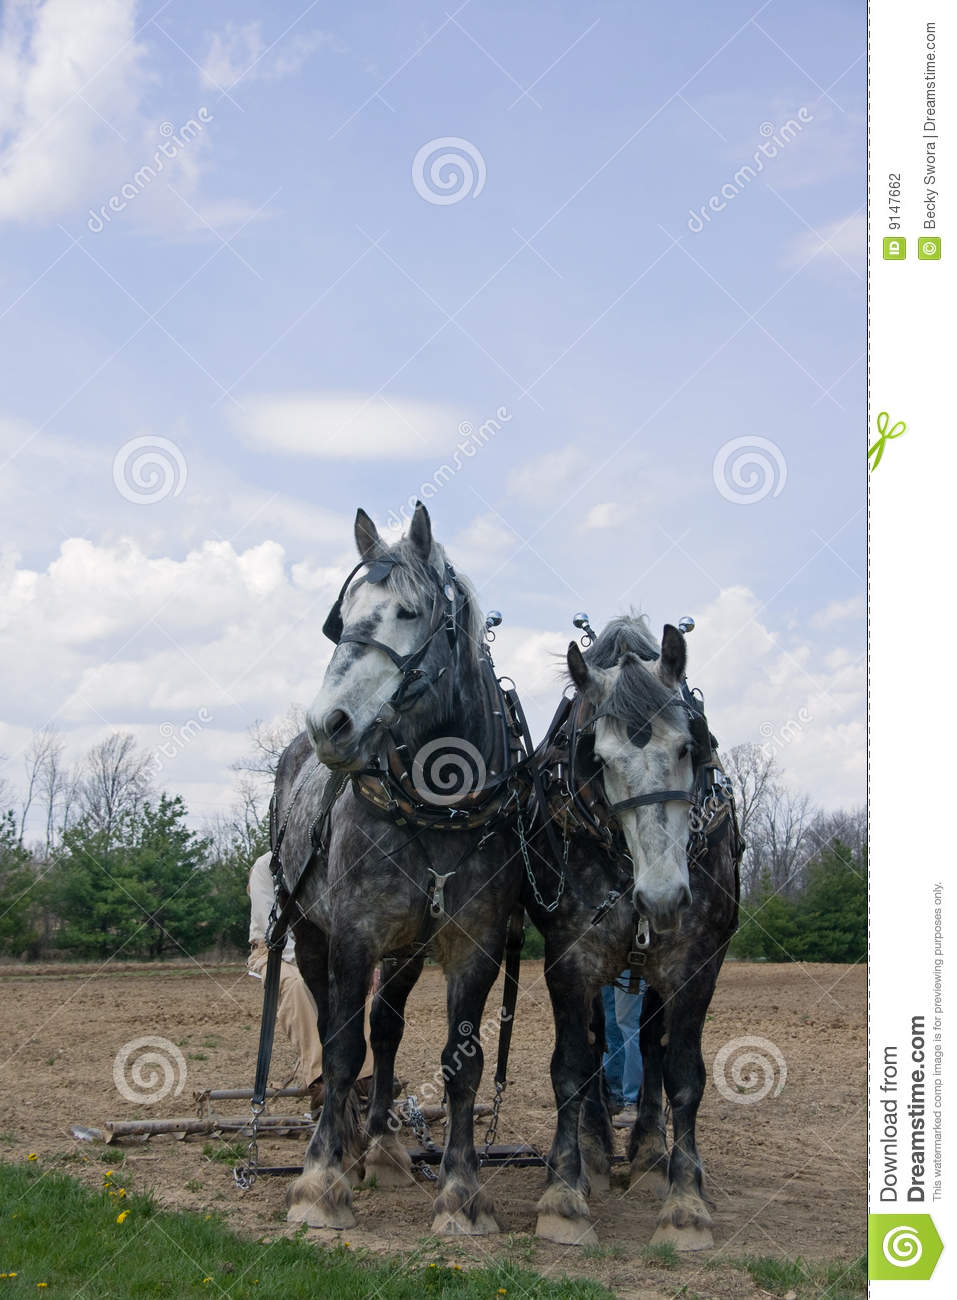 Team Of Draft Horses Hitched To A Plow In A Field